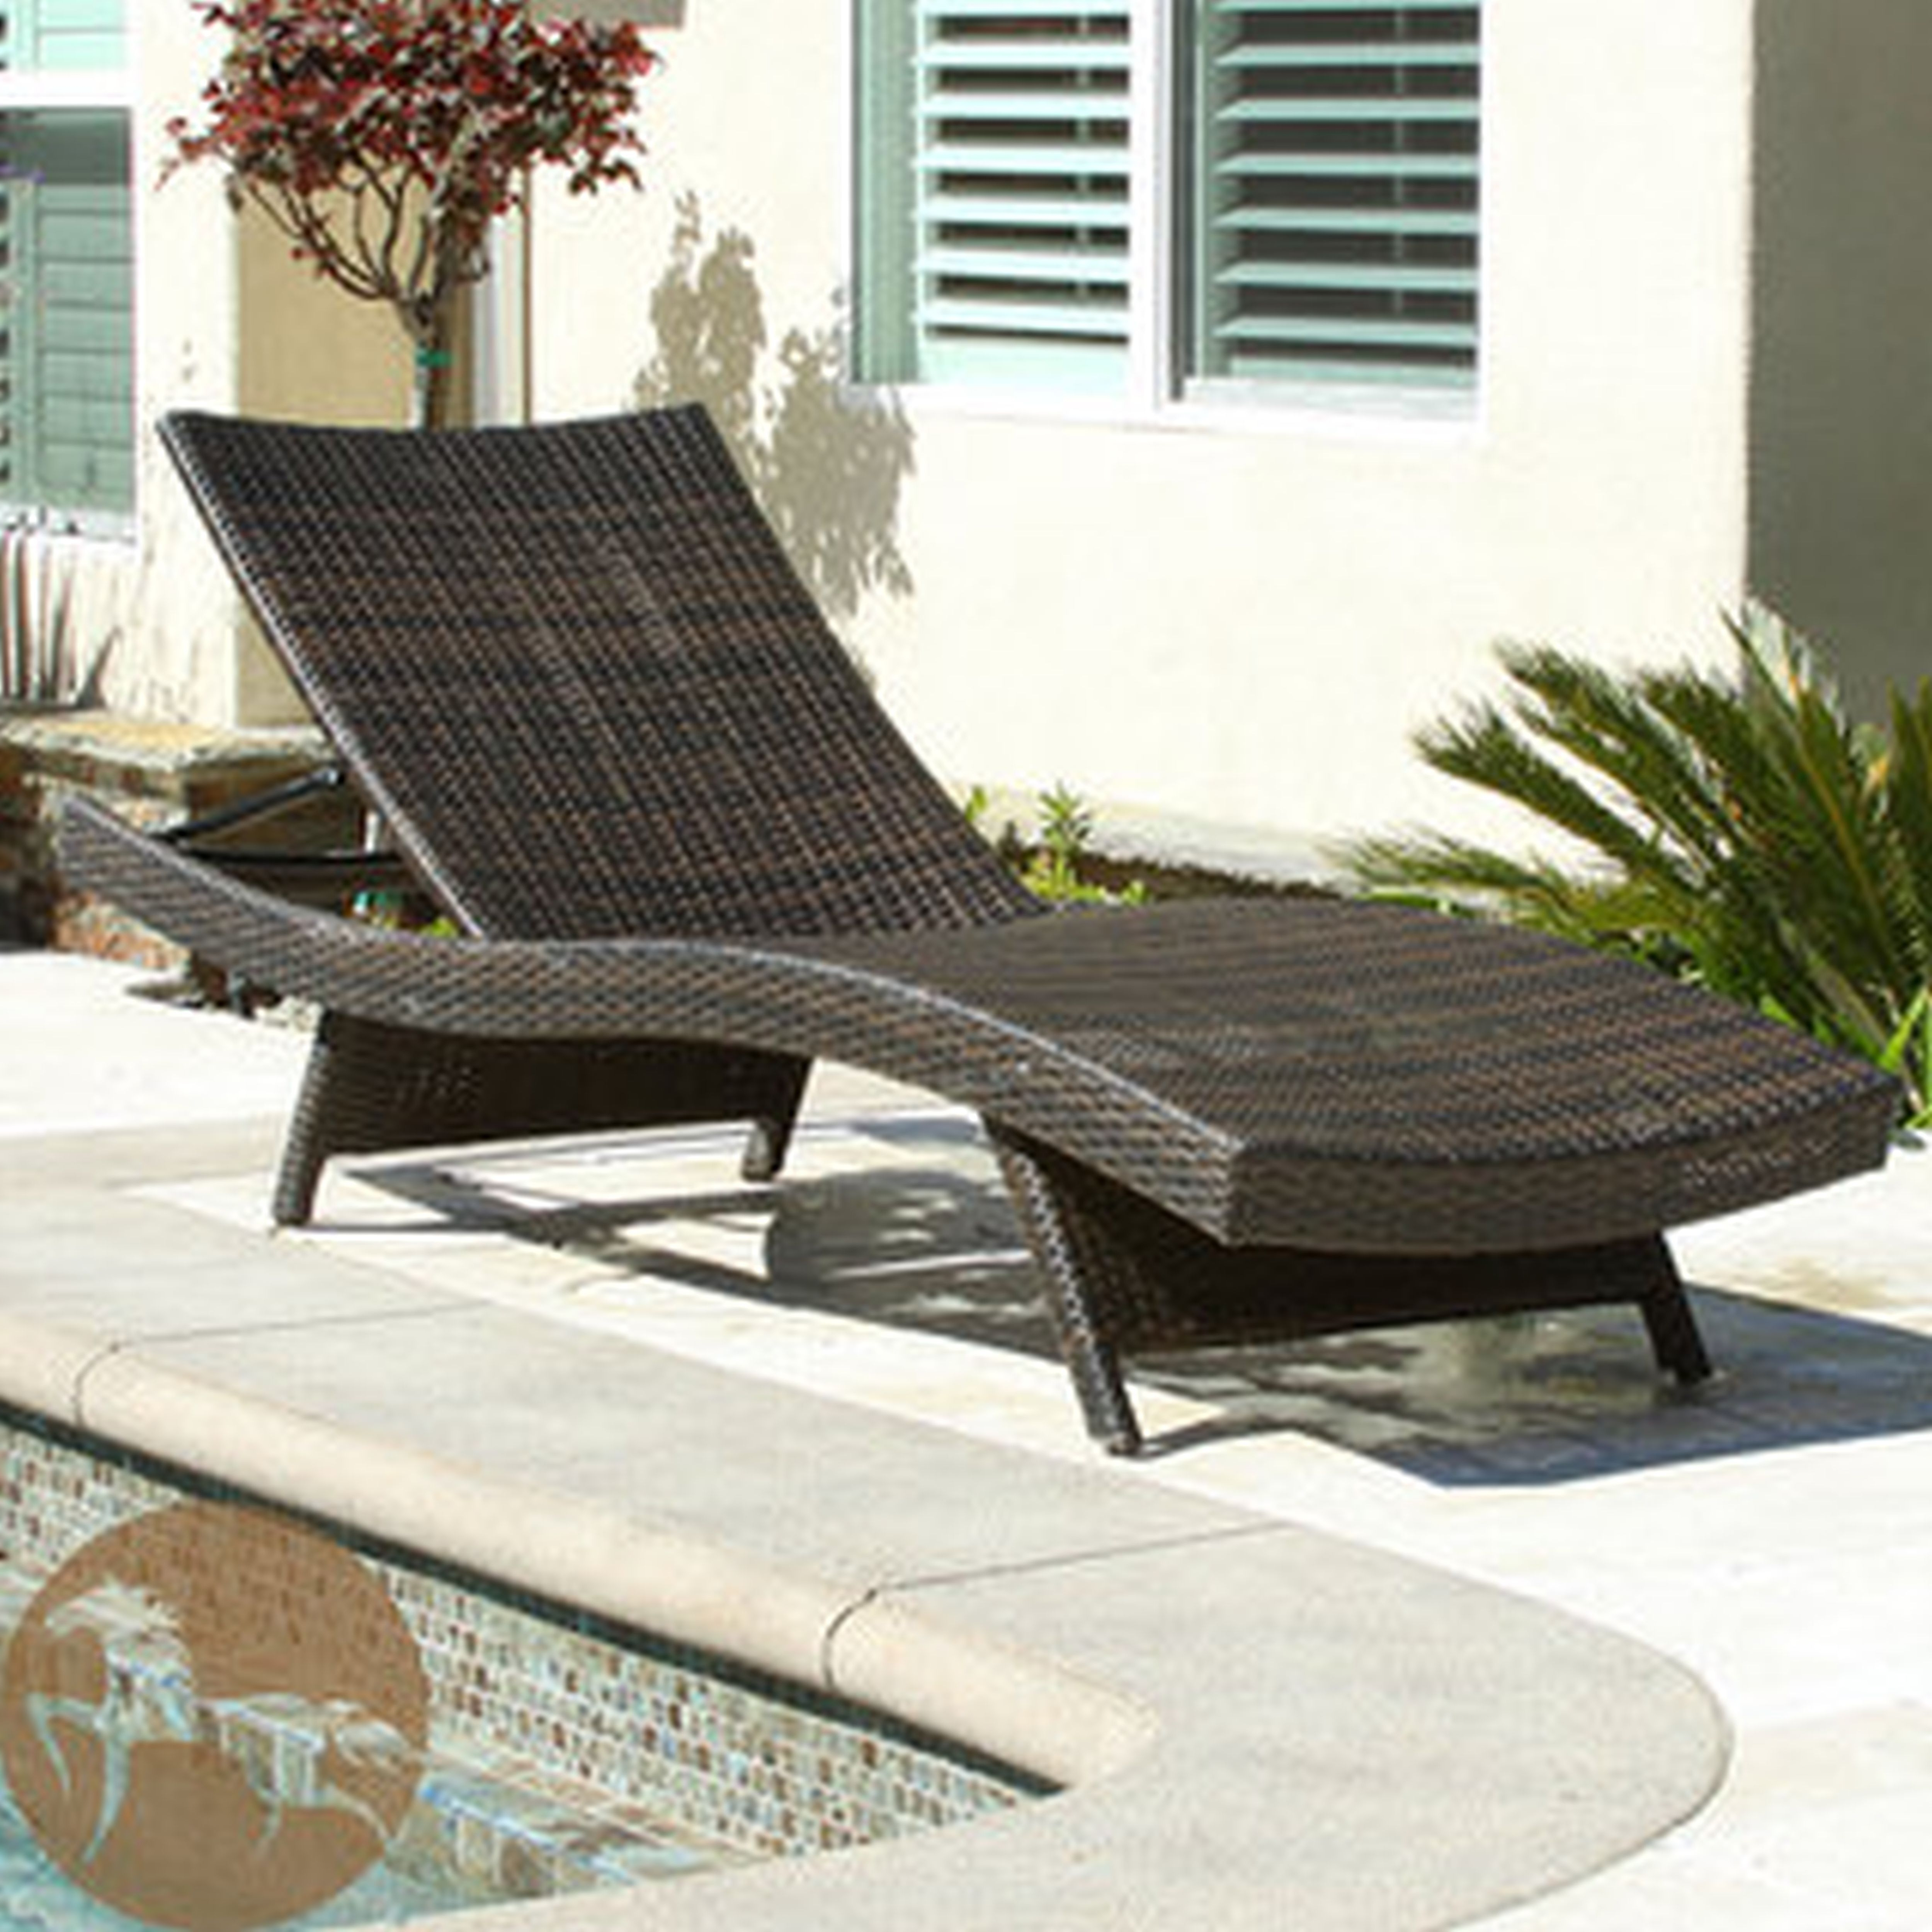 Picture 12 Of 39 – Pool Lounge Chairs Walmart Lovely Furniture Inside Widely Used Heavy Duty Chaise Lounge Chairs (View 12 of 15)